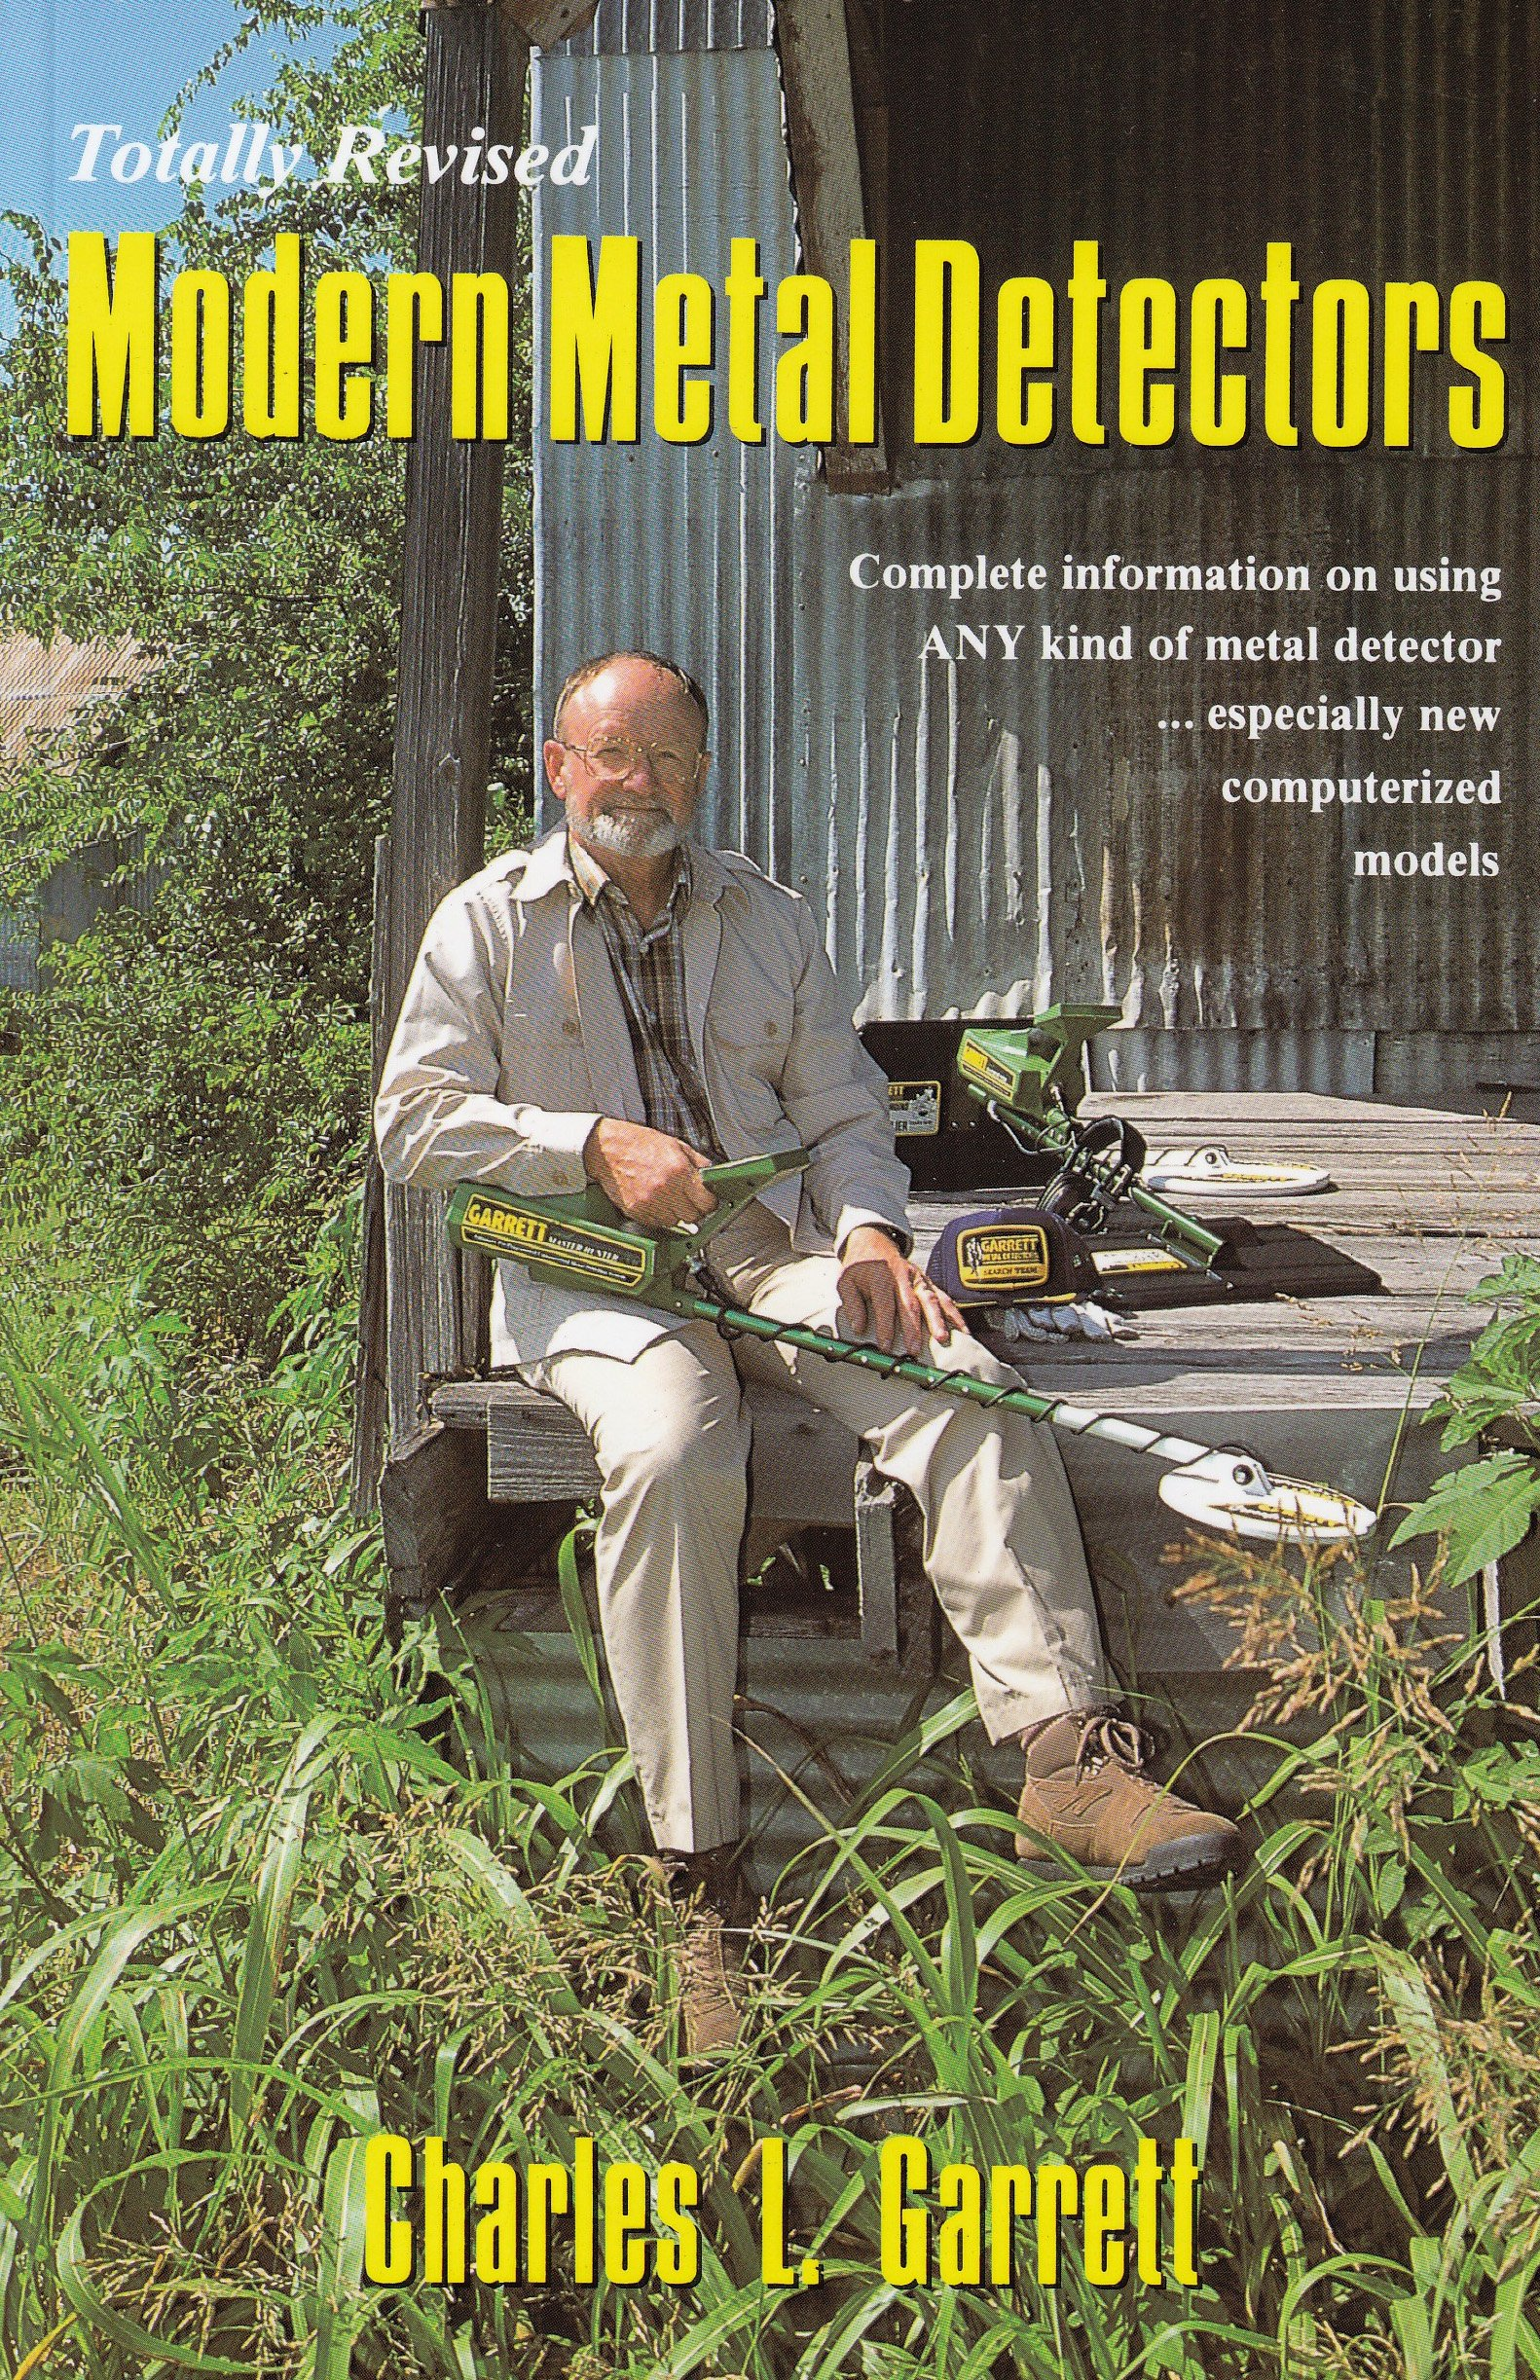 Modern Metal Detectors: Prospecting and Treasure Hunting Paperback – April 28, 1998